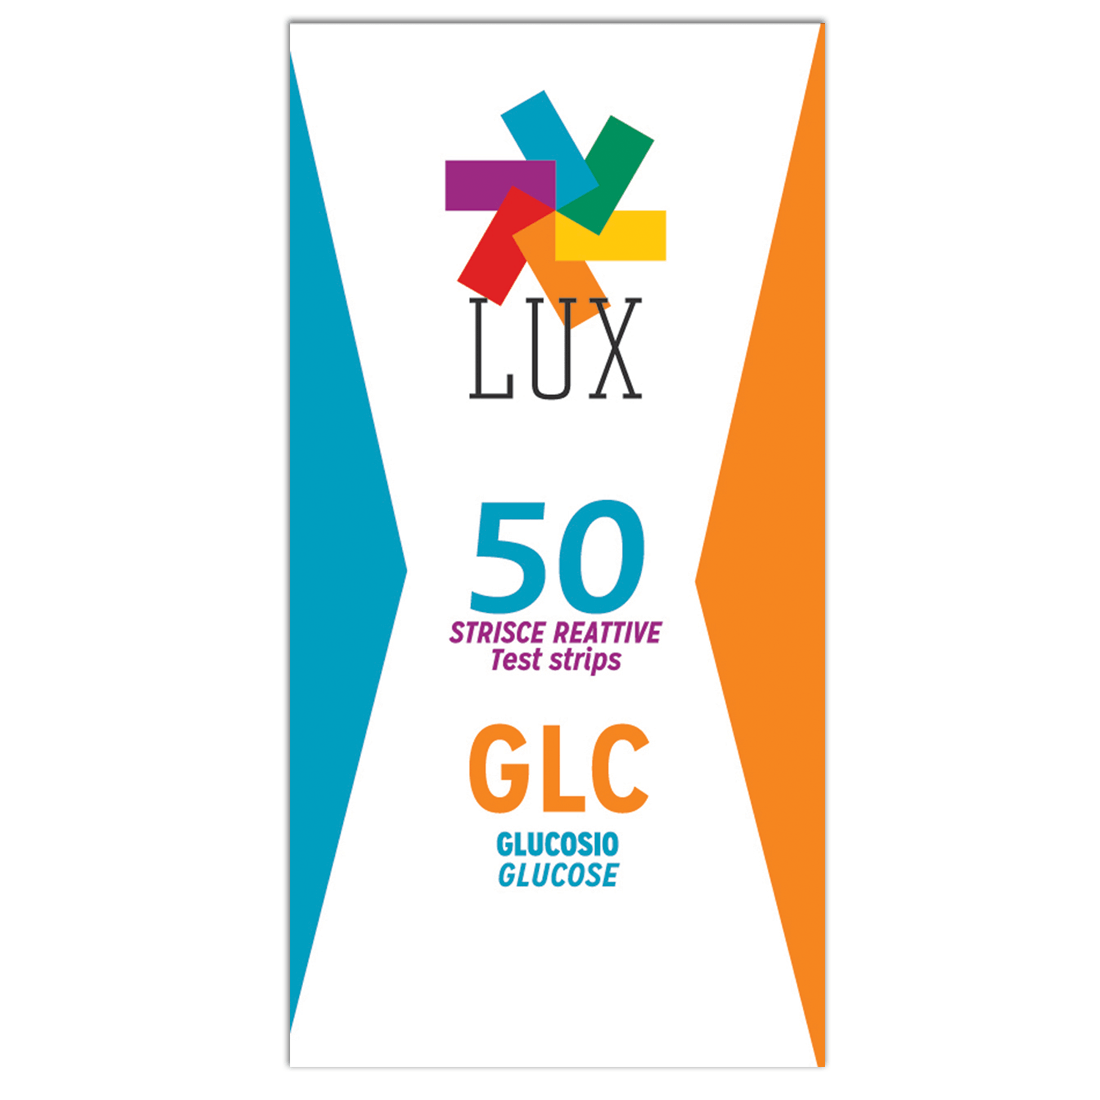 LUX Lipid Glucose Test Strips (Box of 50 Strips) | Plasma Calibration Method | LGE50